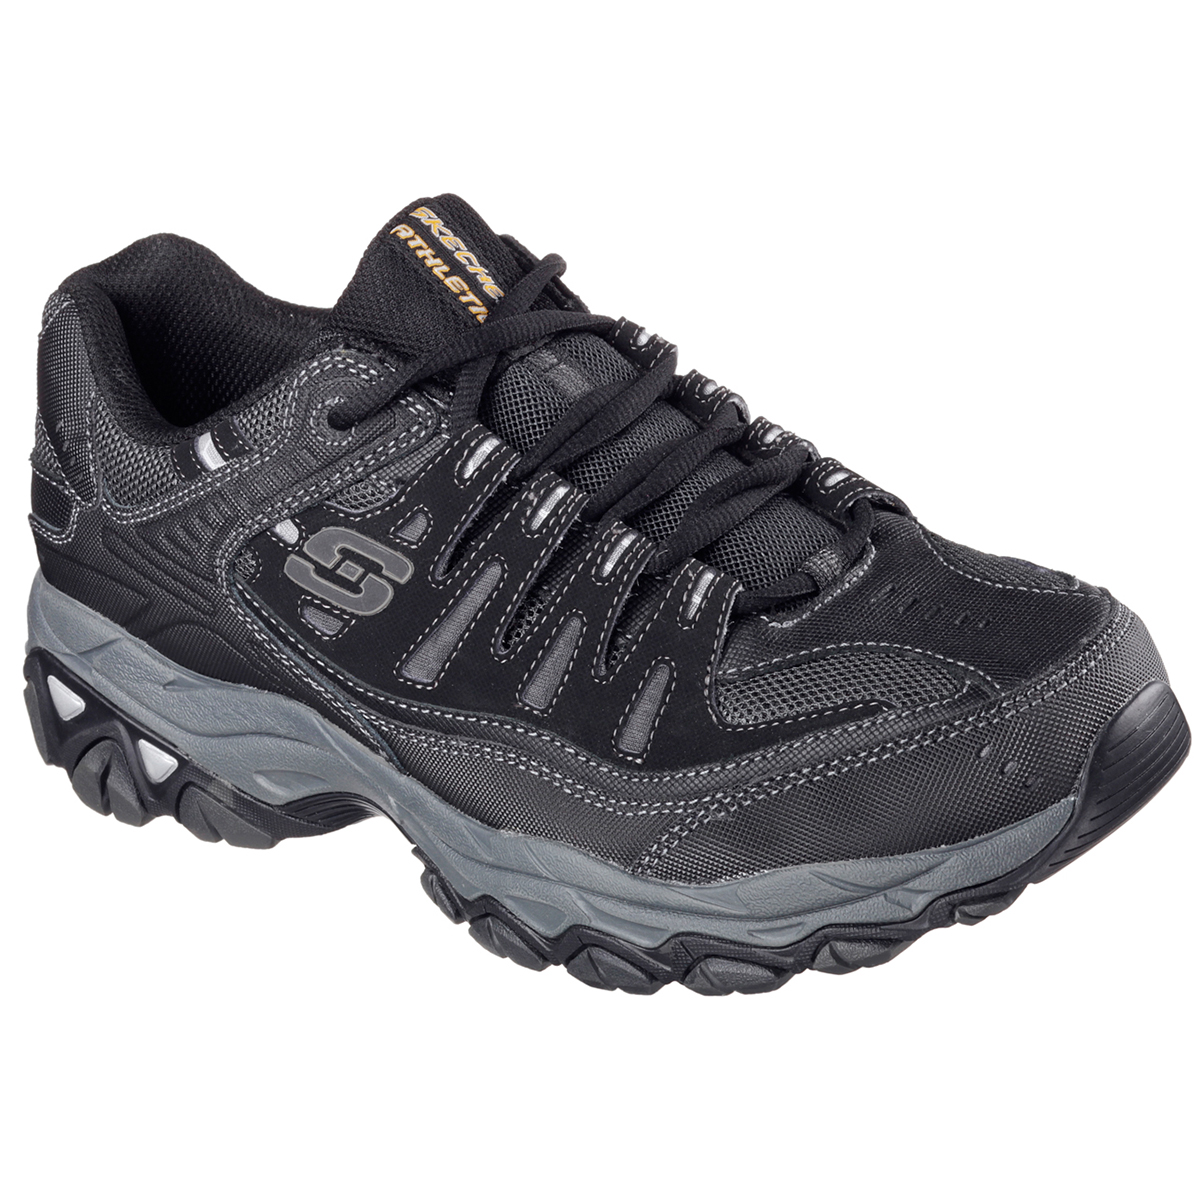 skechers wide fit shoes Sale,up to 42